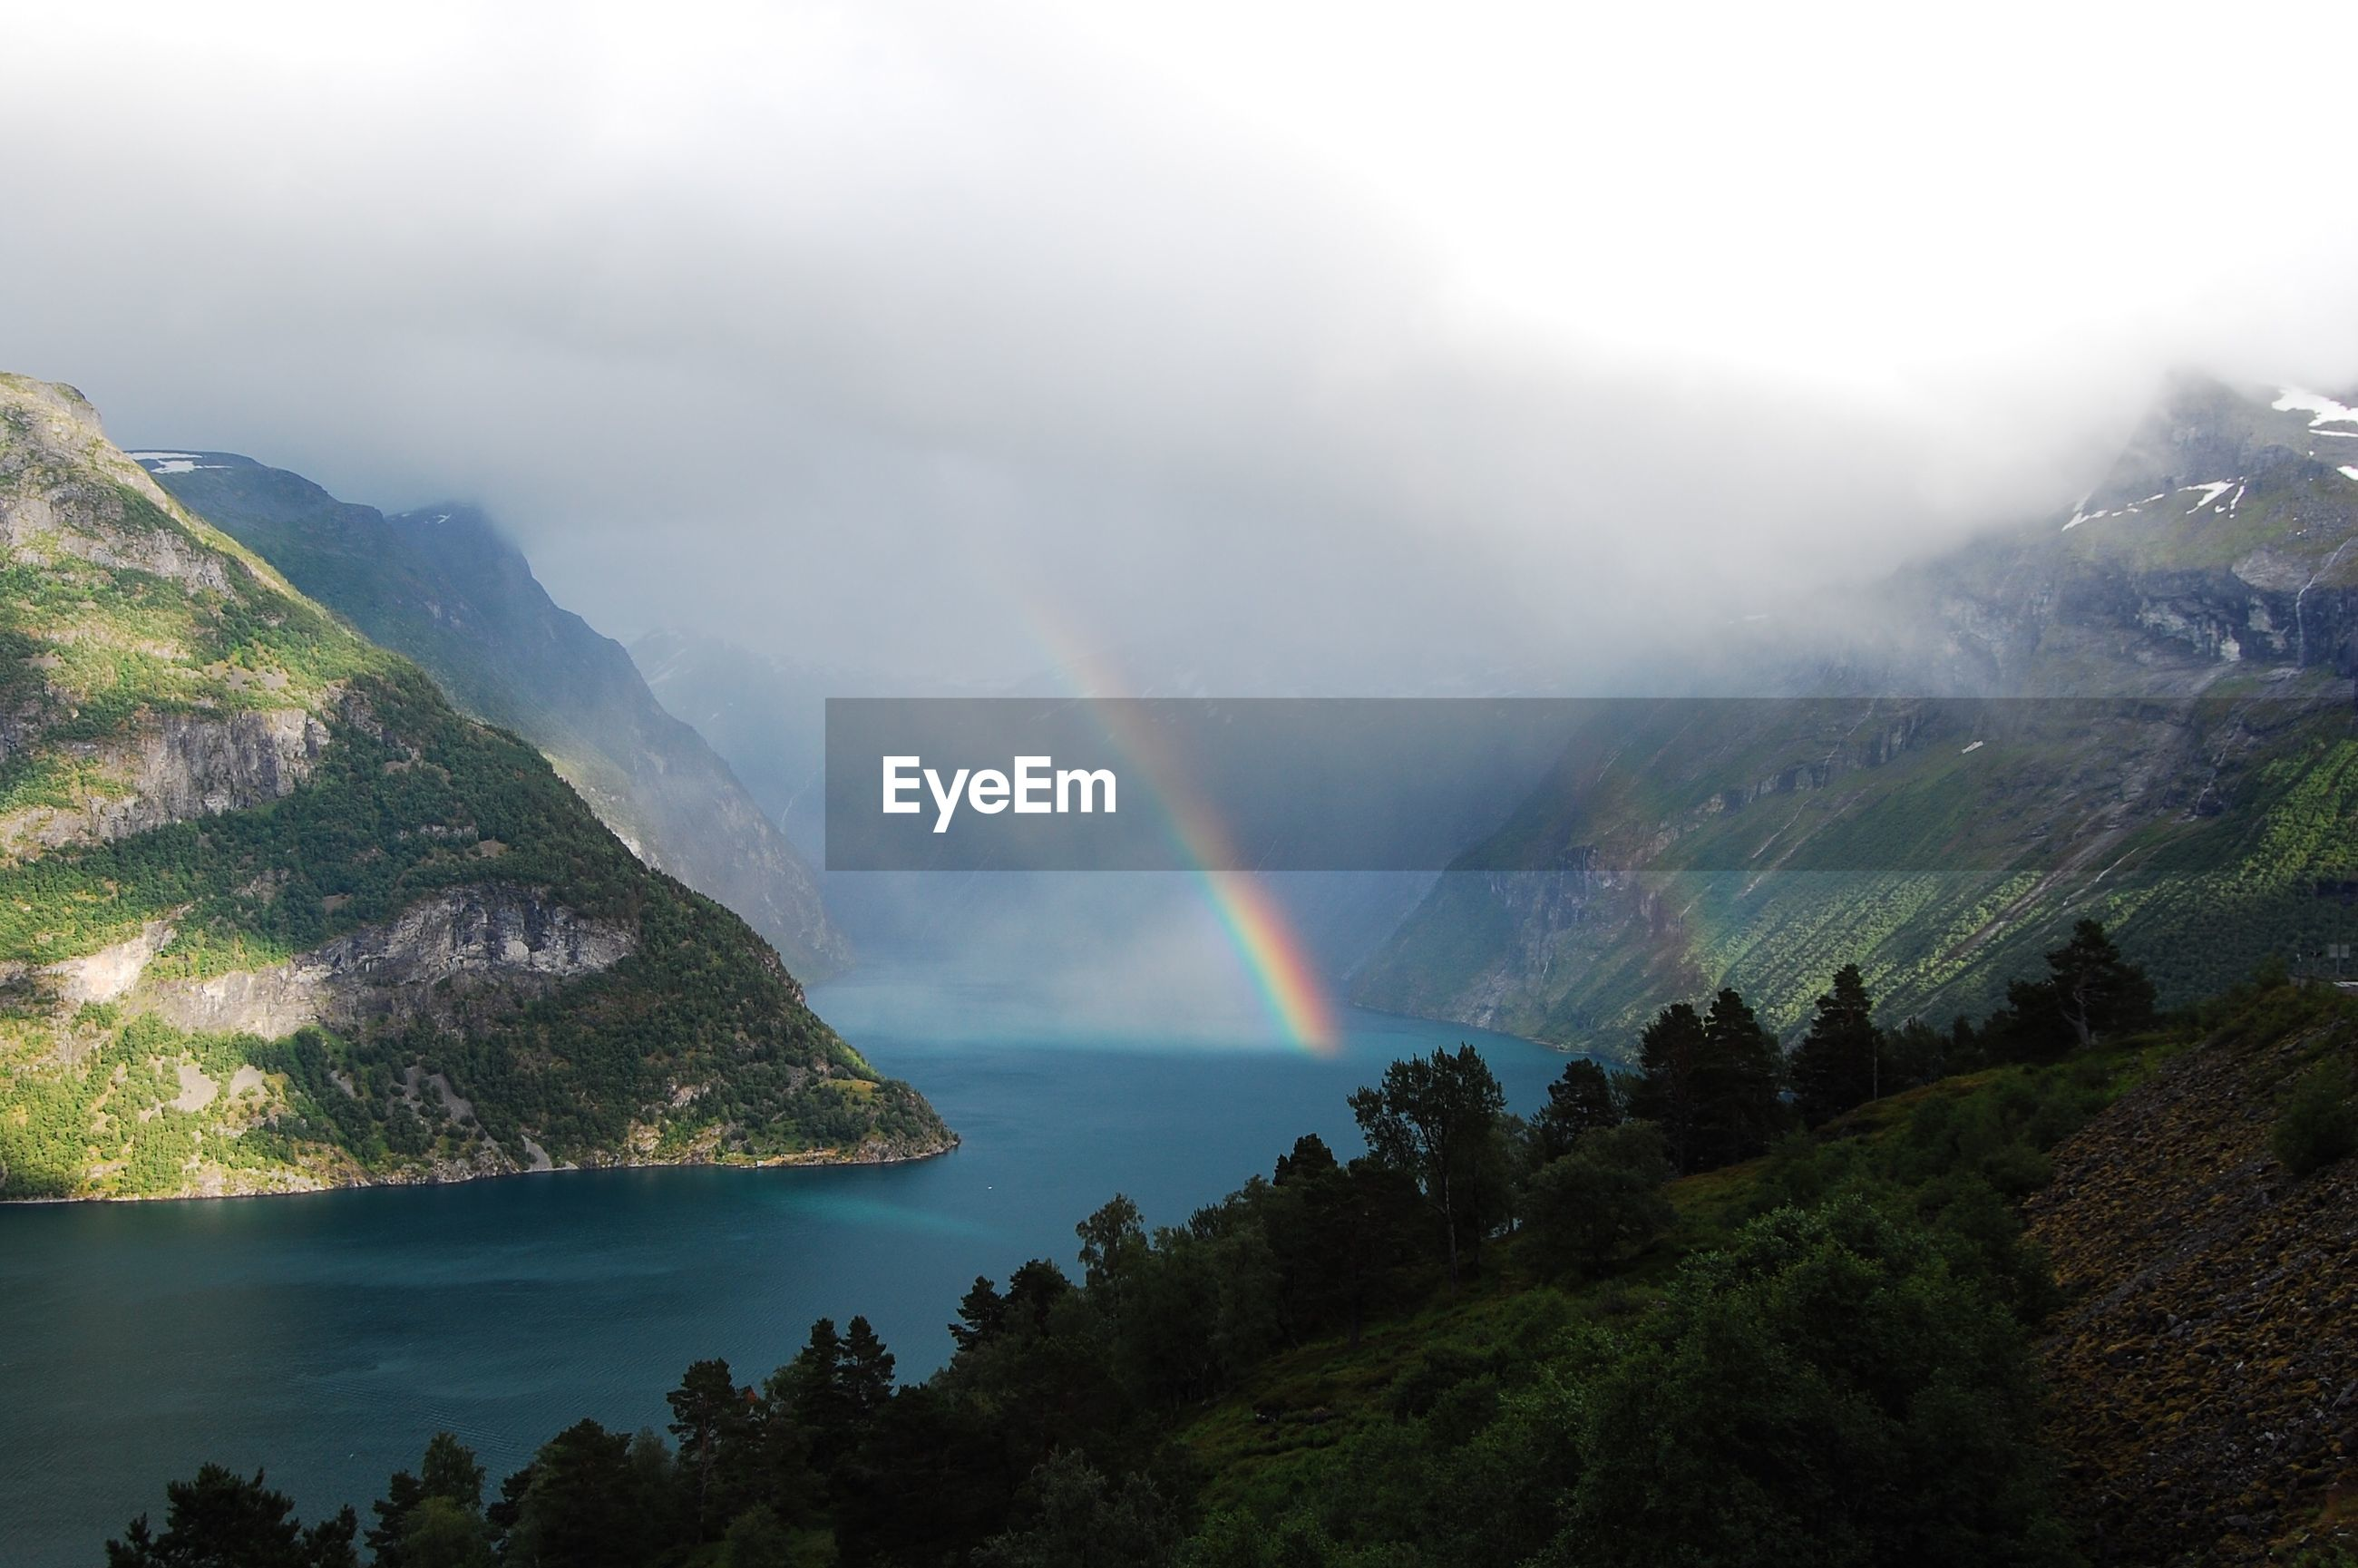 SCENIC VIEW OF RAINBOW AND MOUNTAINS AGAINST SKY